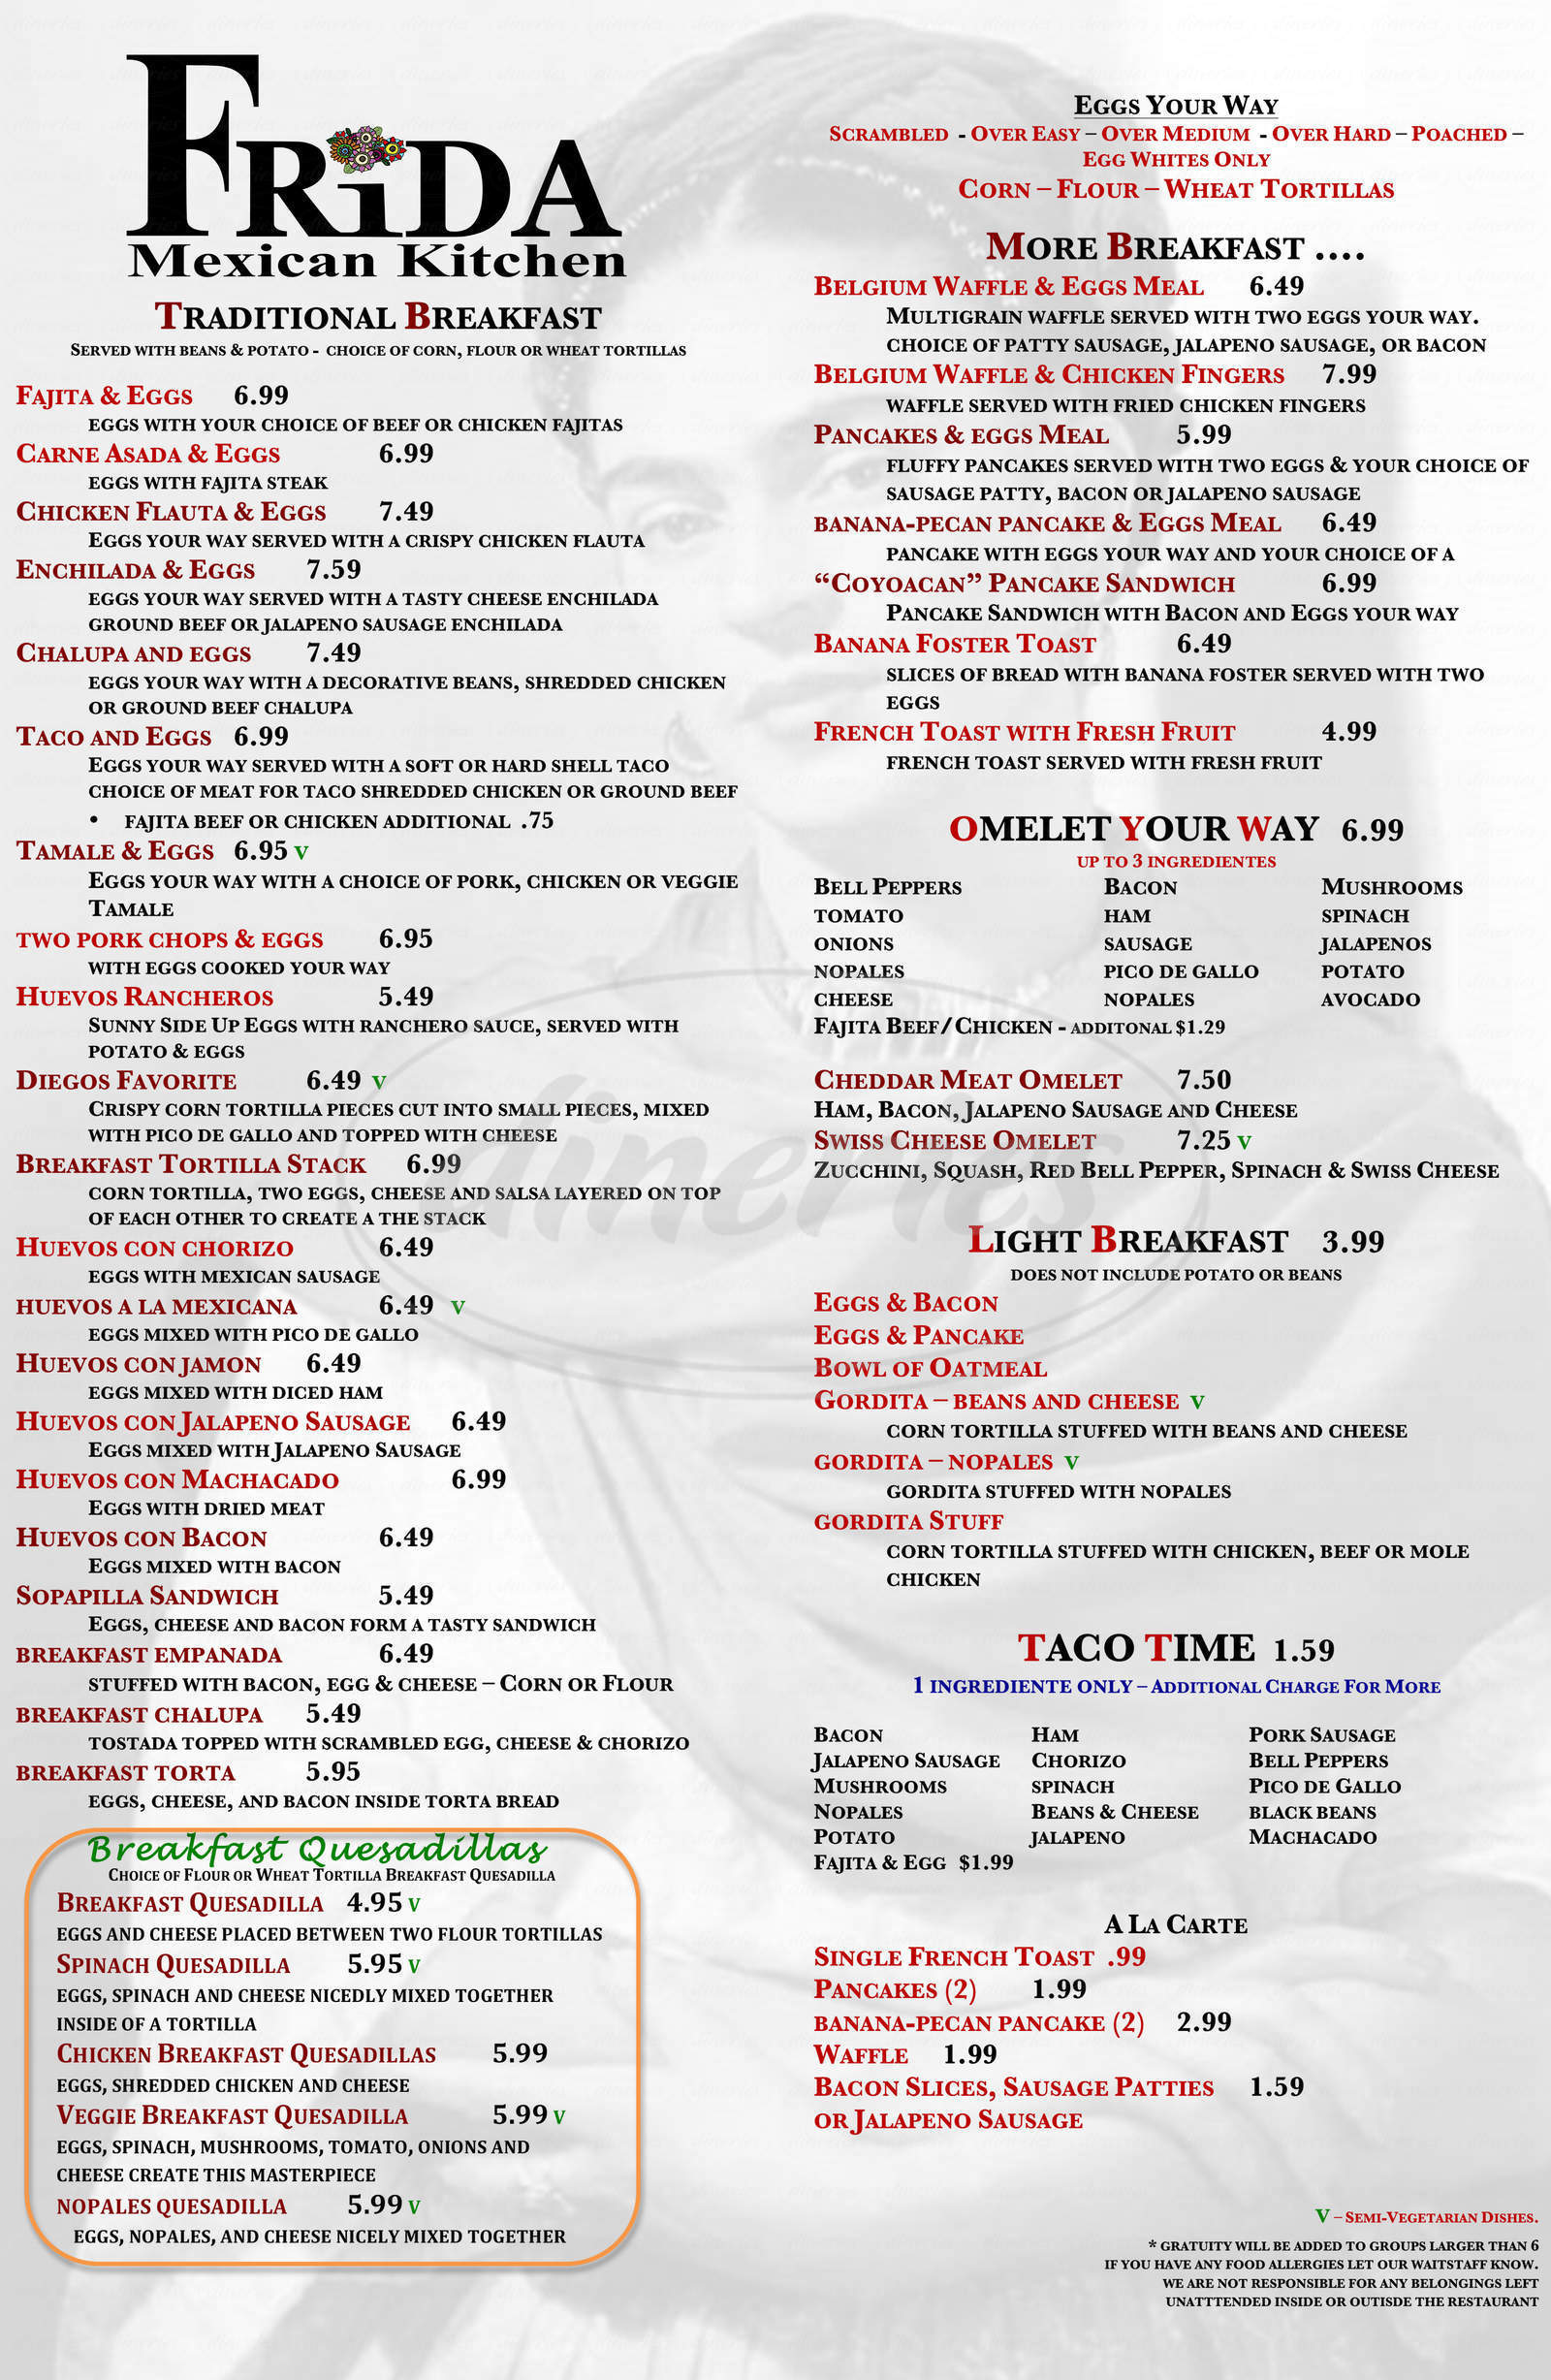 menu for La Casa de Frida Mexican Kitchen